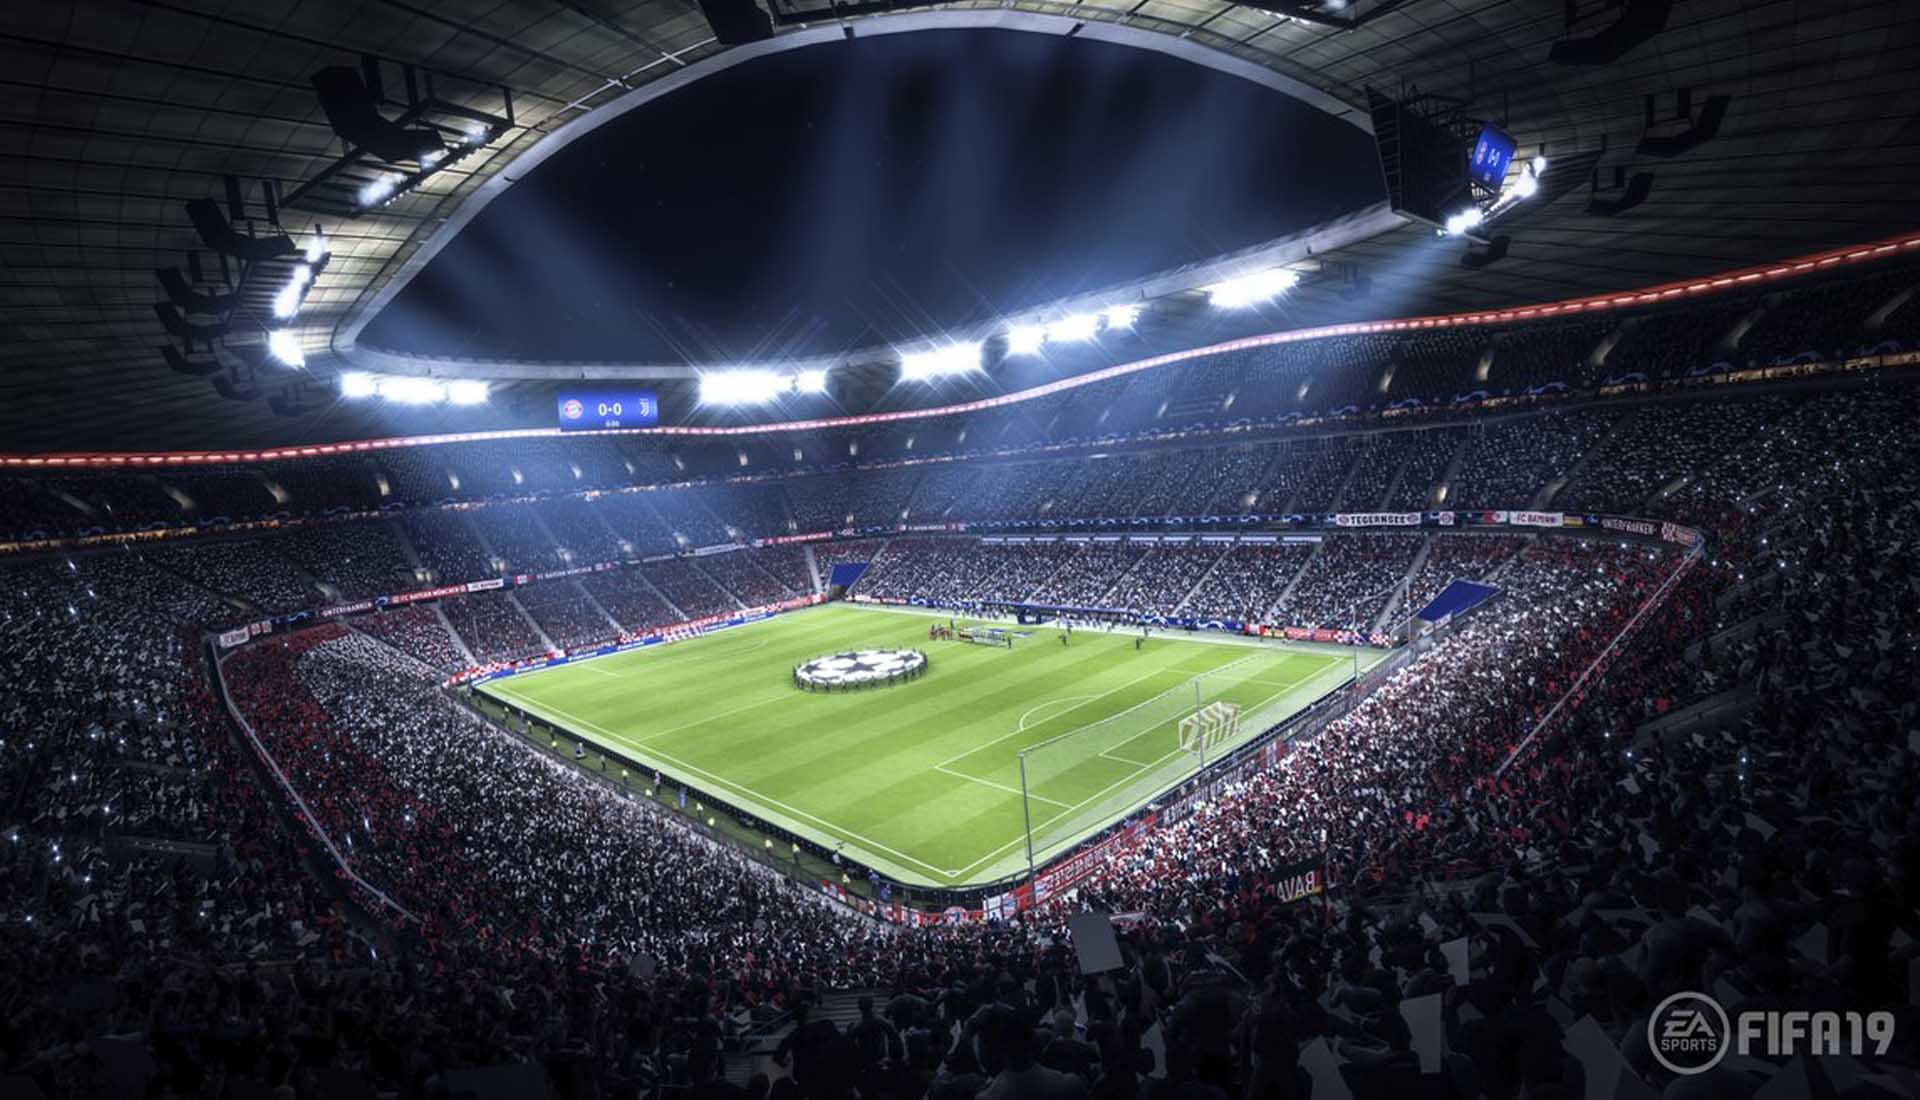 Download uefa champions league logo vector in svg format. EA Sports Launch FIFA 19 Trailer With Champions League